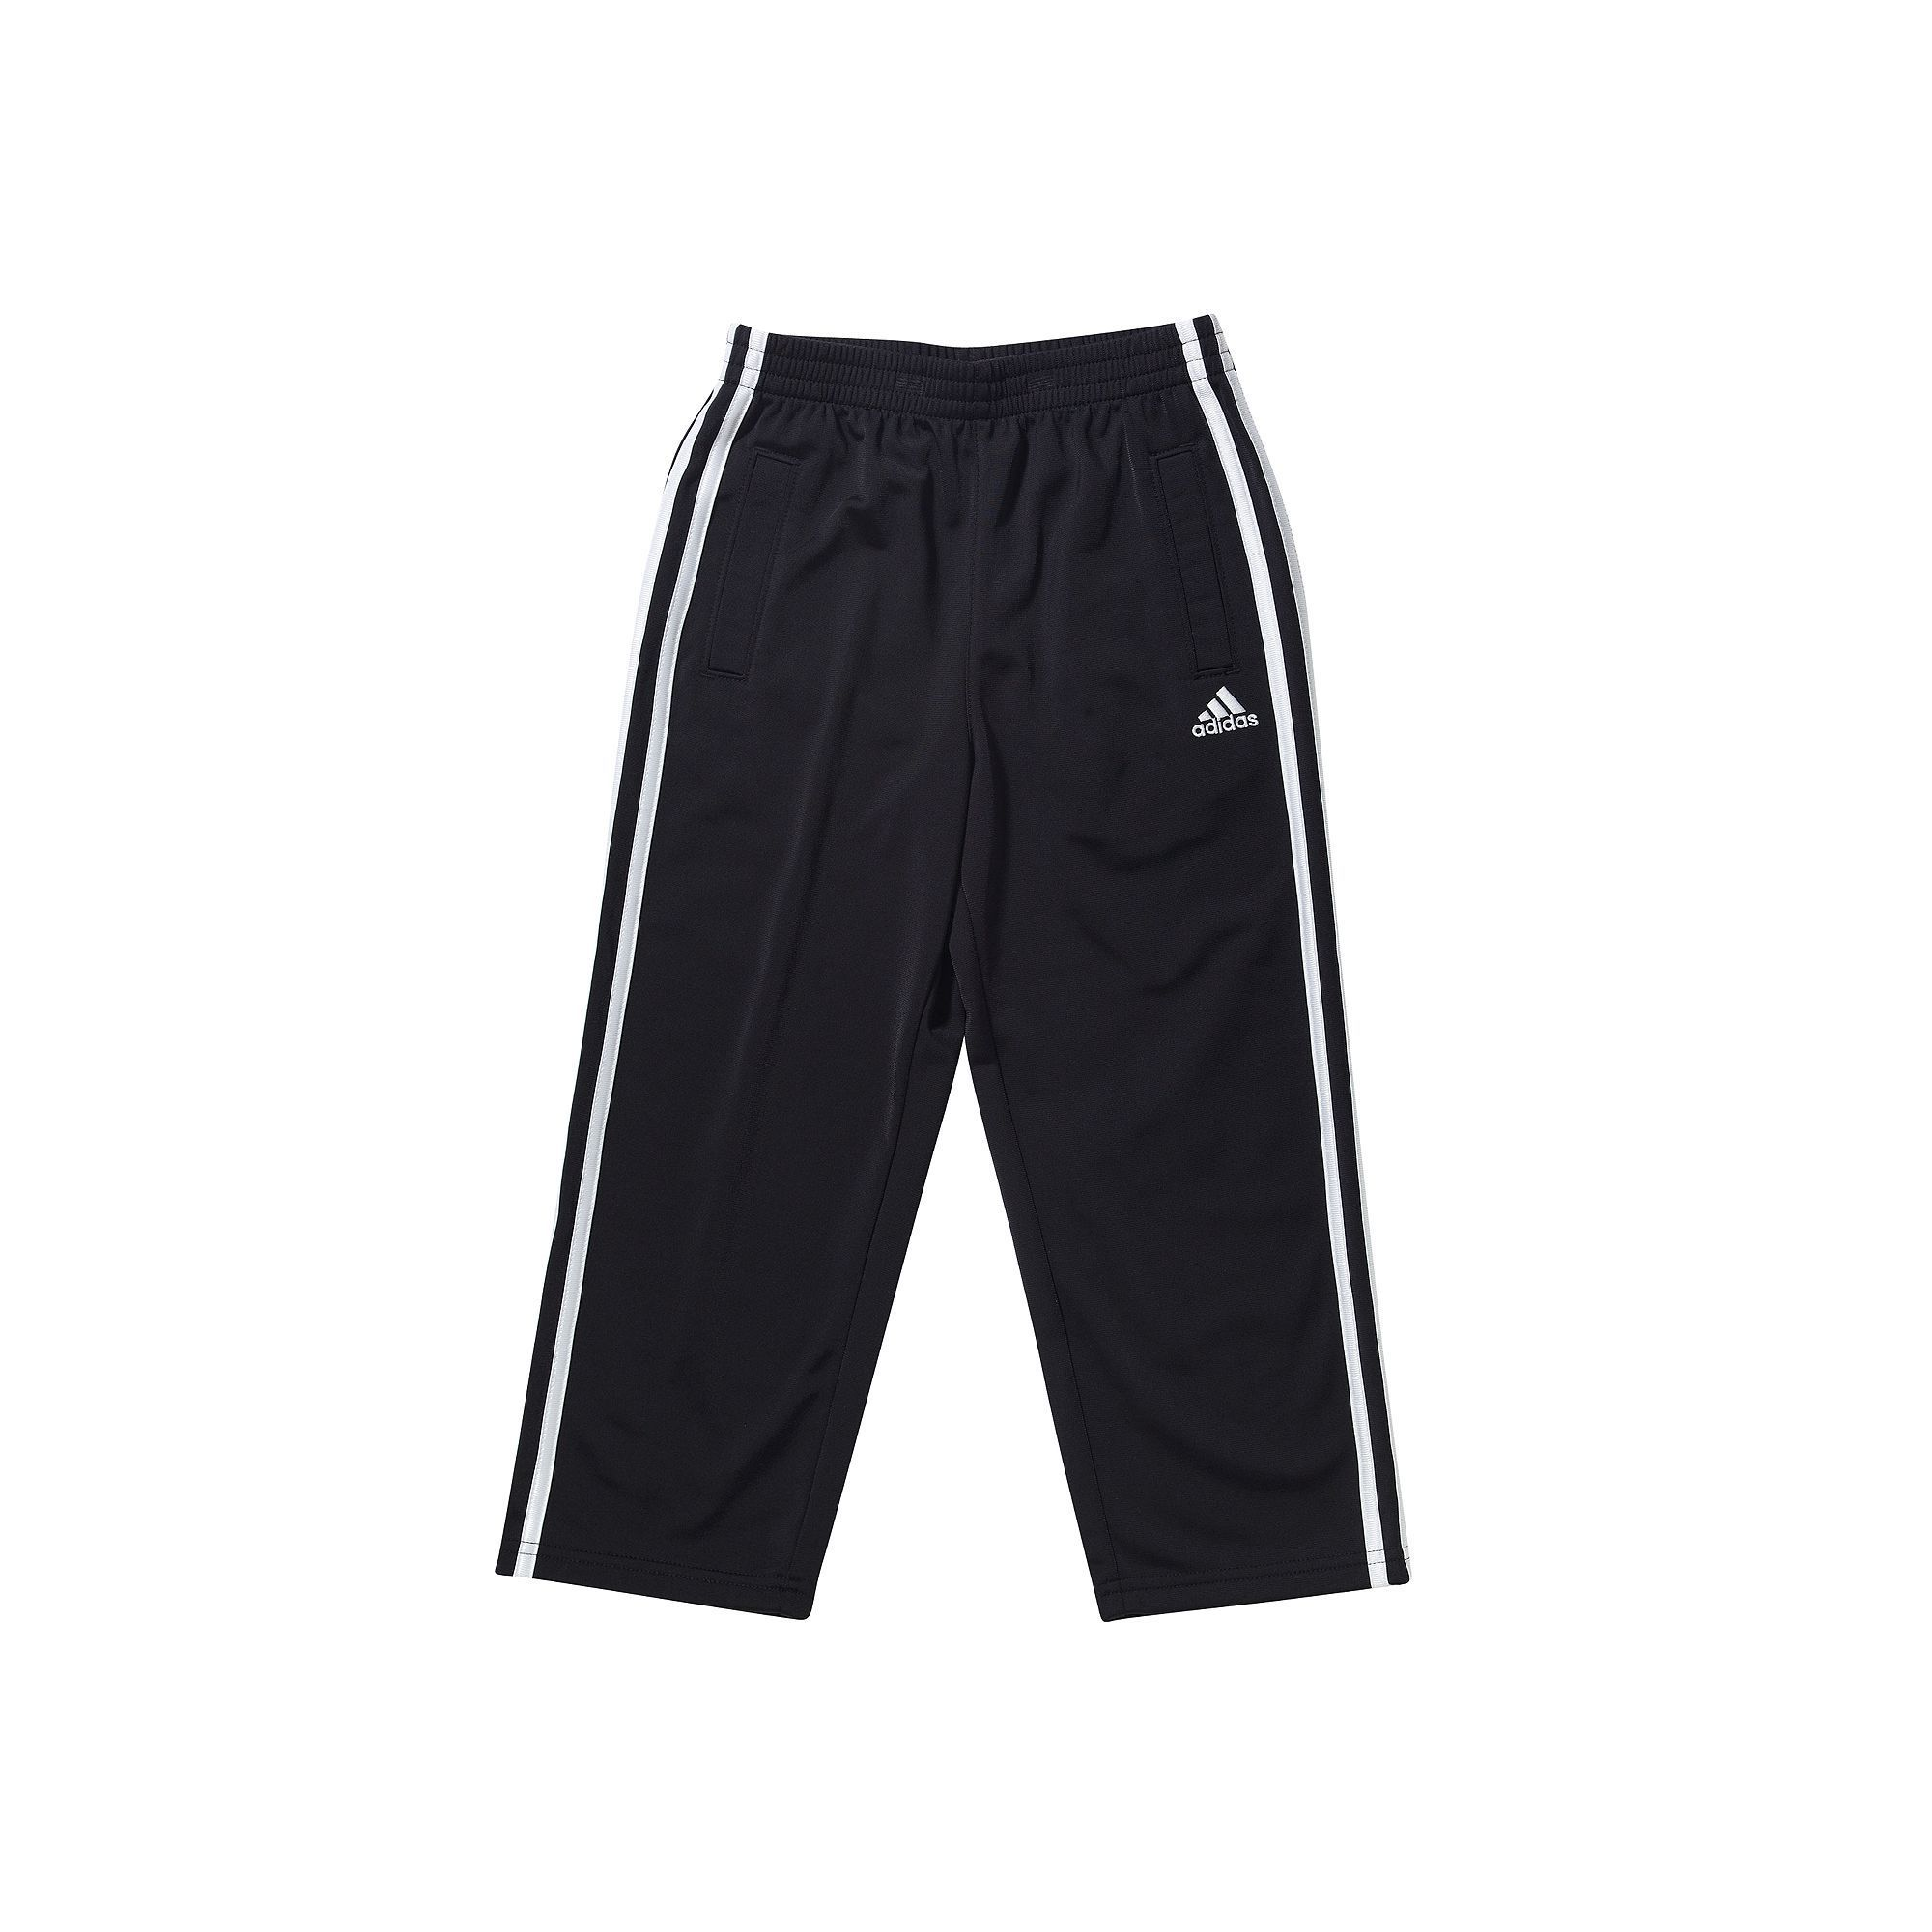 3446237bff45 Boys 4-7x adidas Core Tricot Active Pants